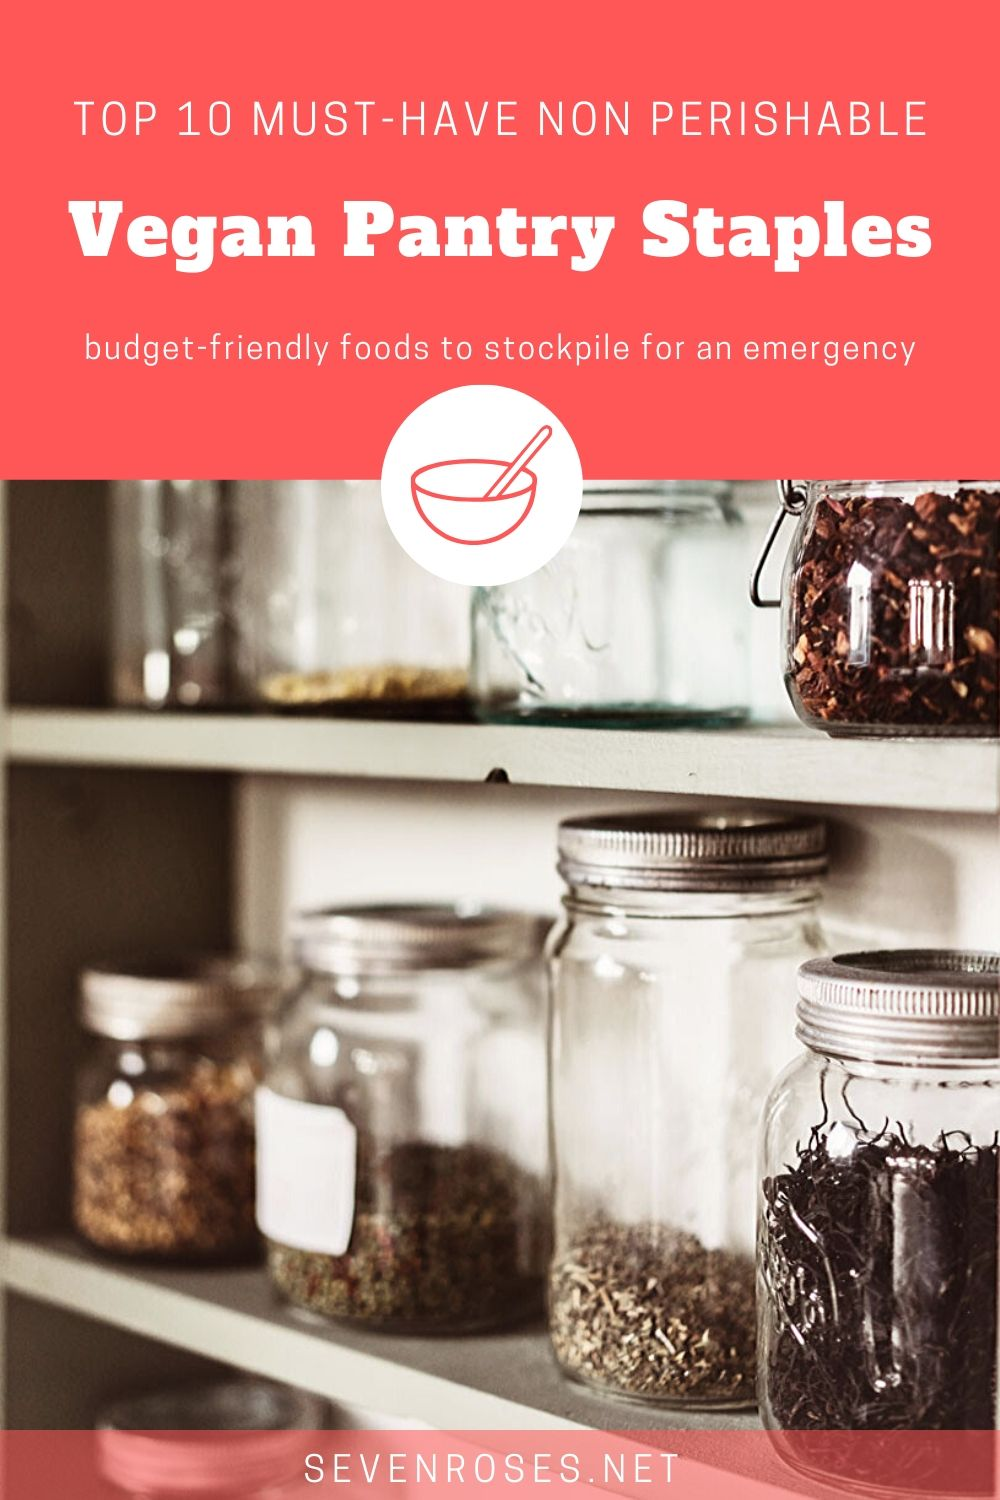 Top 10 must-have non perishable: Vegan pantry staples: budget-friendly foods to stockpile for an emergency